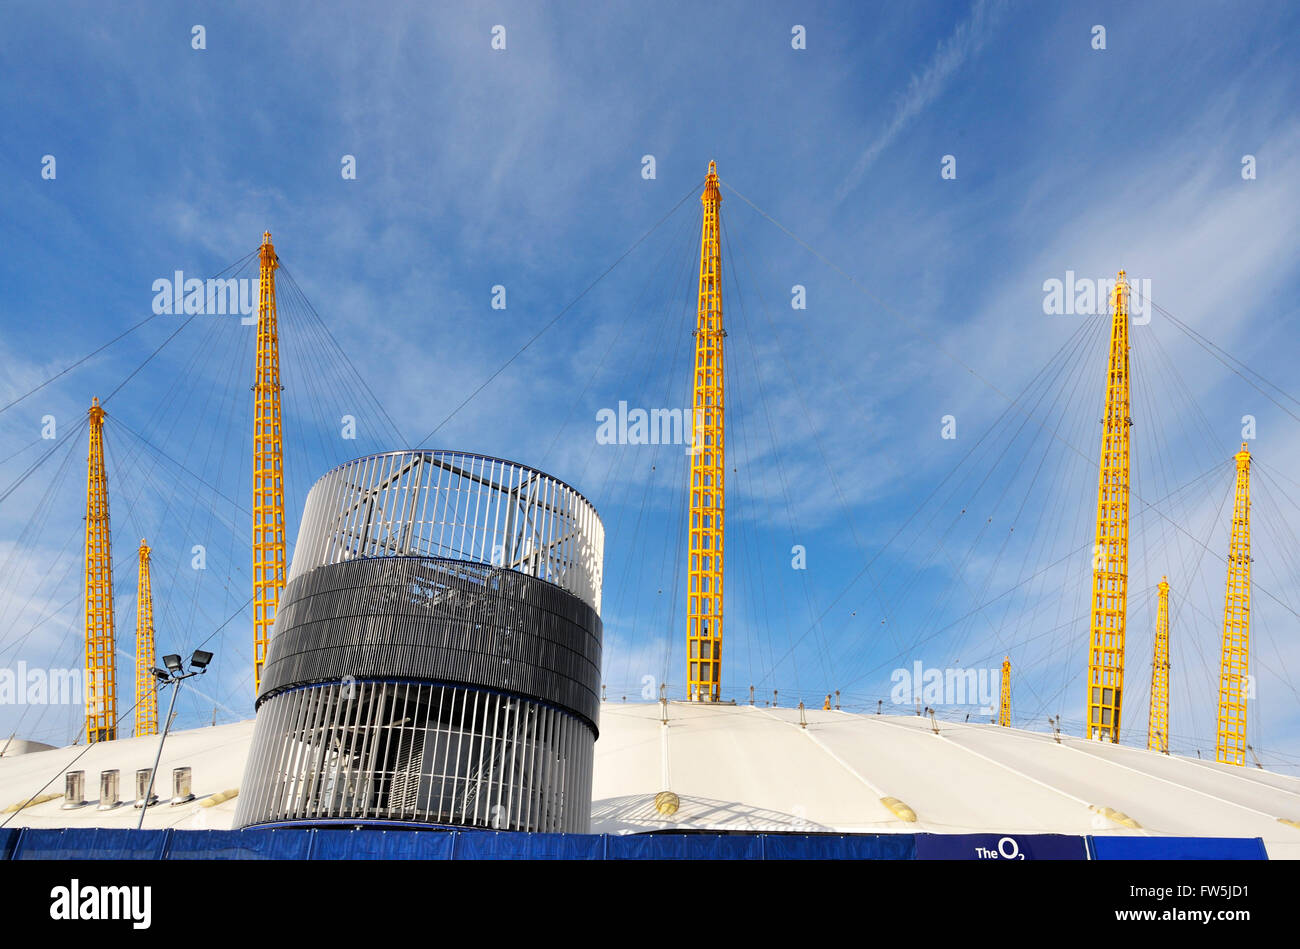 exterior constructional 'spires' of the O2 Arena, Millennium Dome (Millenium), North Greenwich, London, - Stock Image